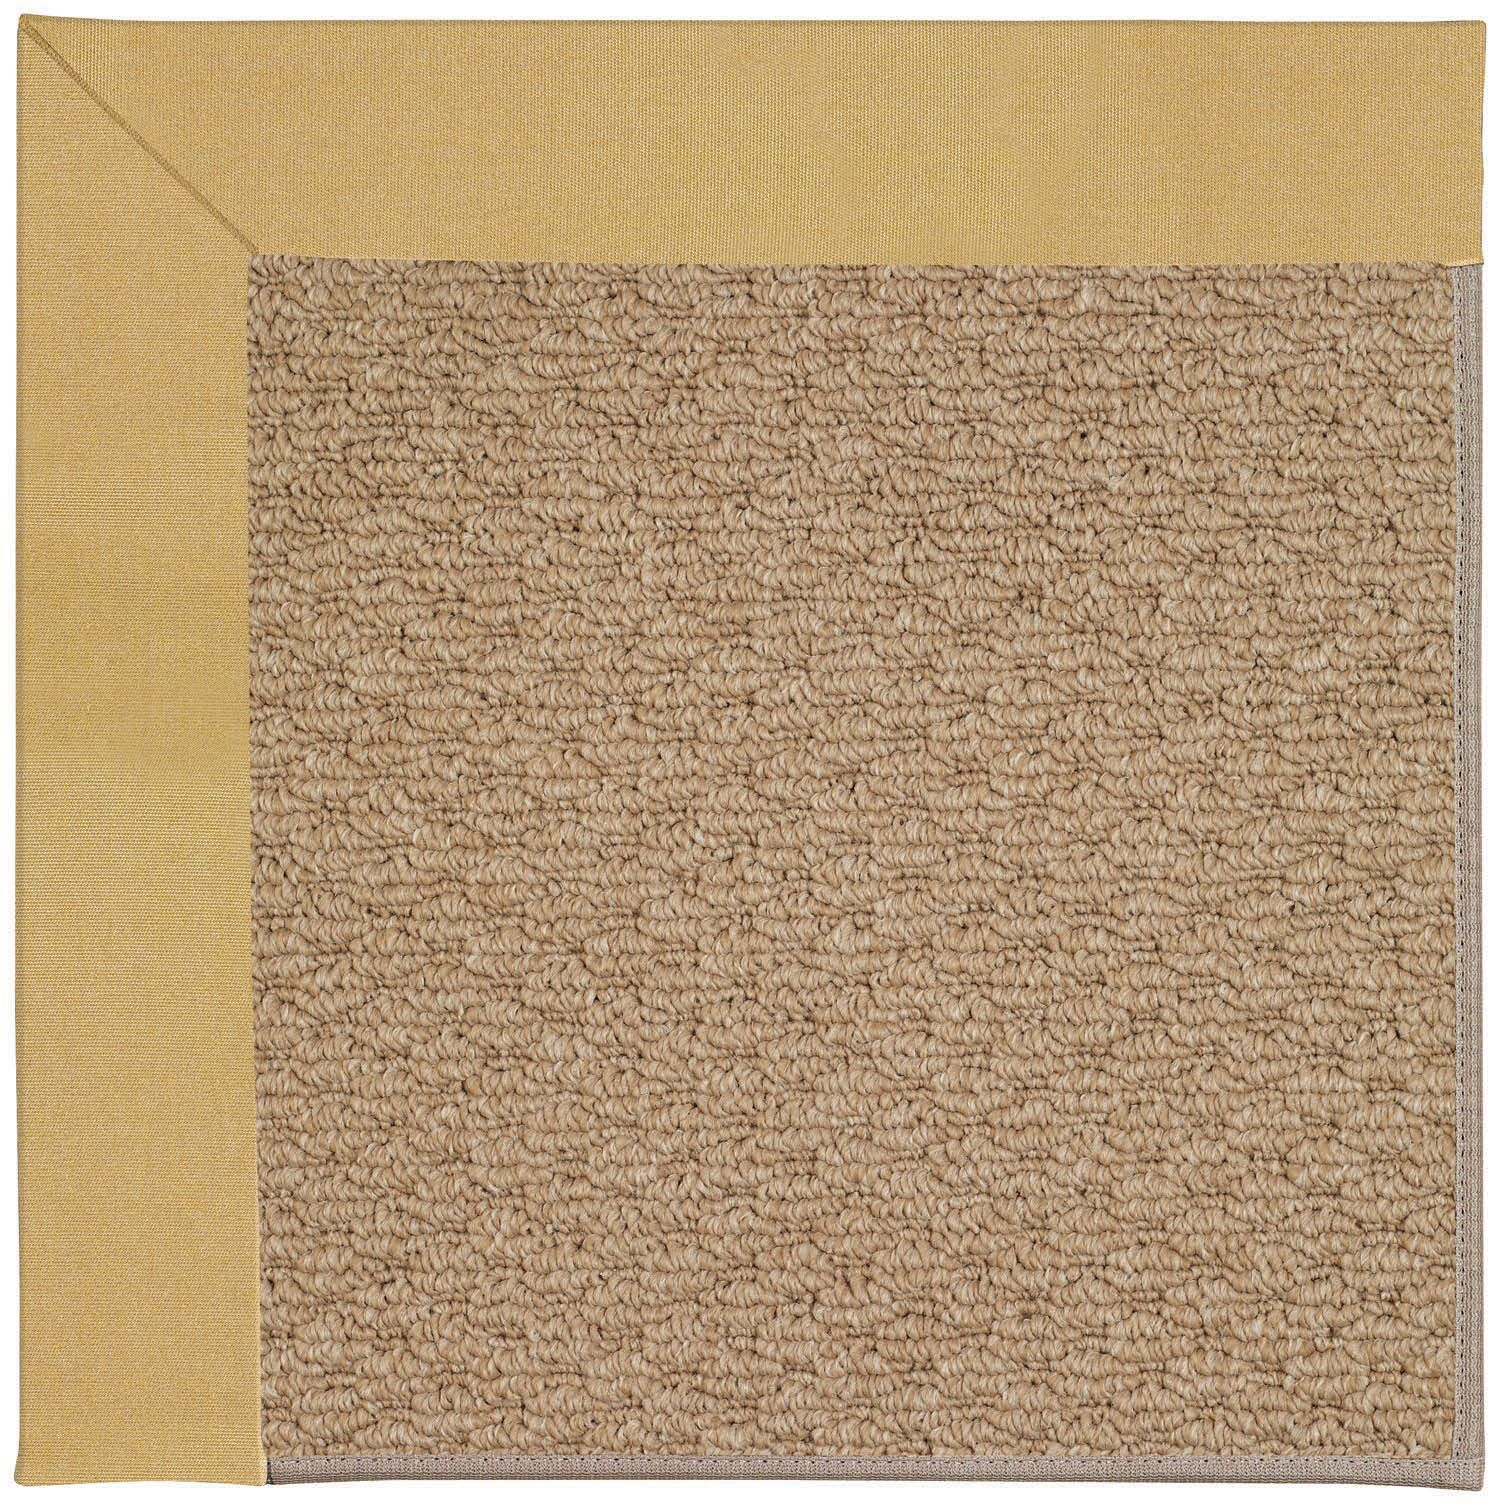 Lisle Machine Tufted Wheatfield/Brown Indoor/Outdoor Area Rug Rug Size: Square 10'